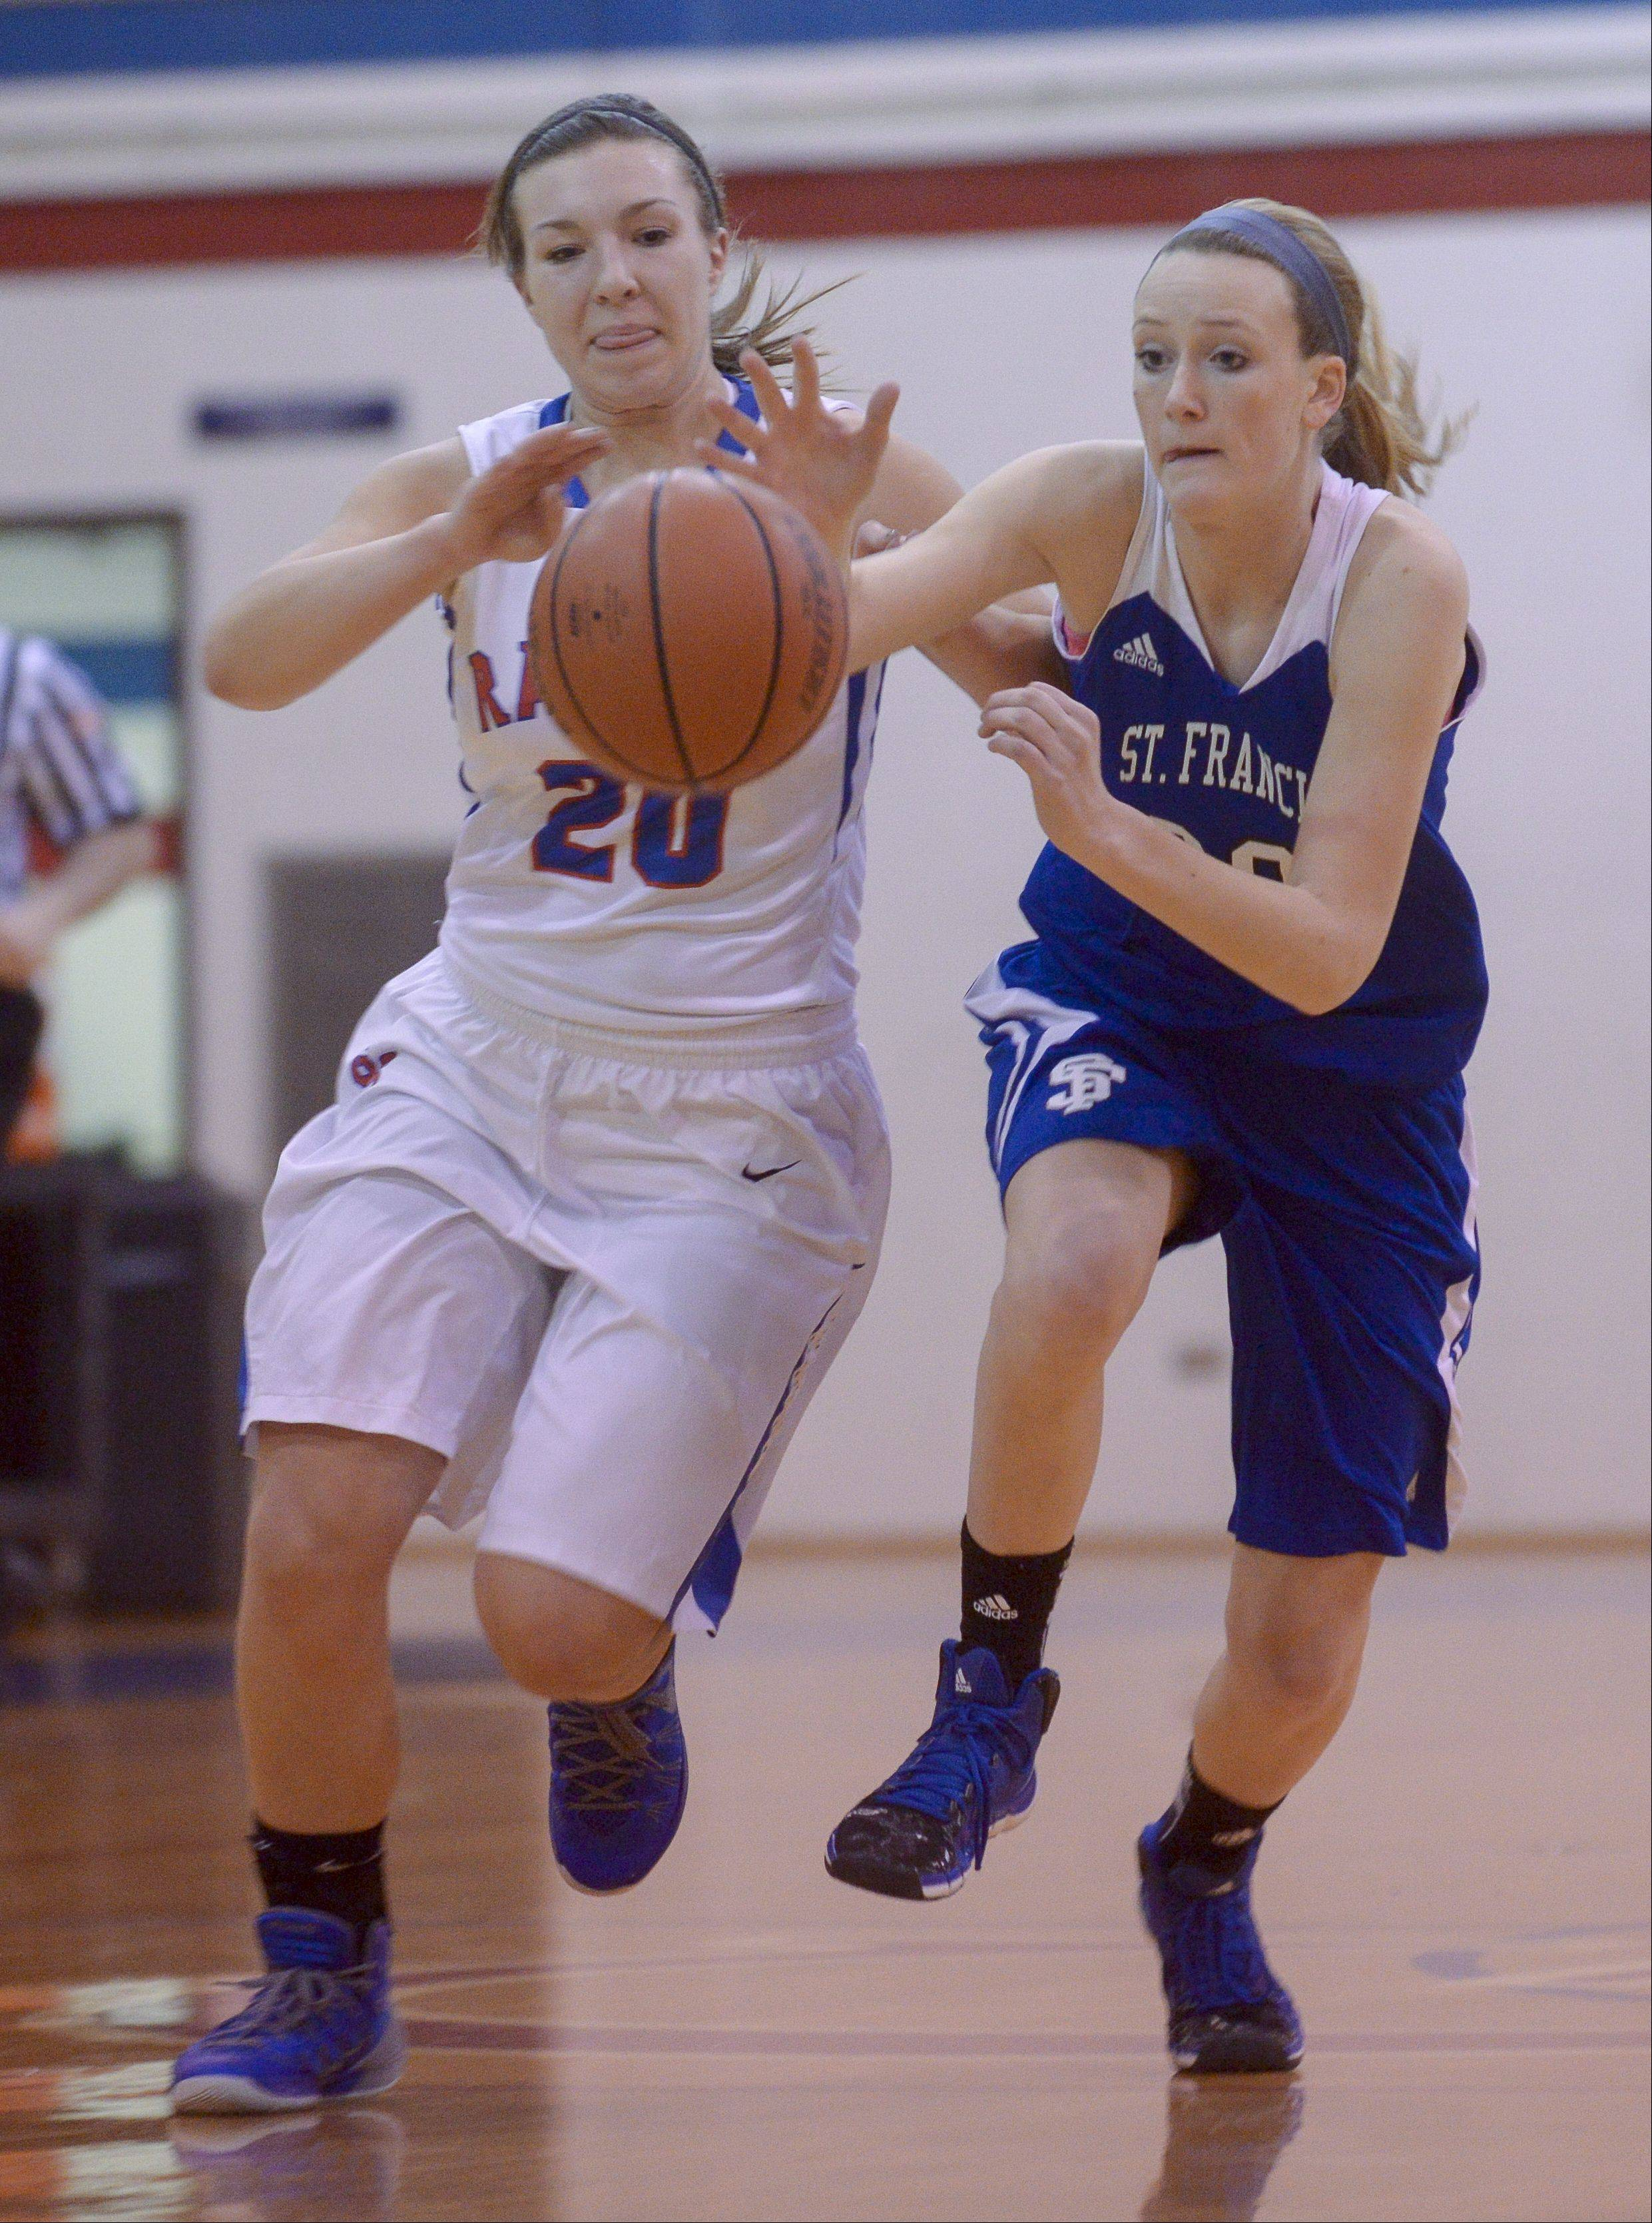 Glenbard South�s Megan Smith and St. Francis� Caroline Pins scramble for control of the ball during girls basketball at South.